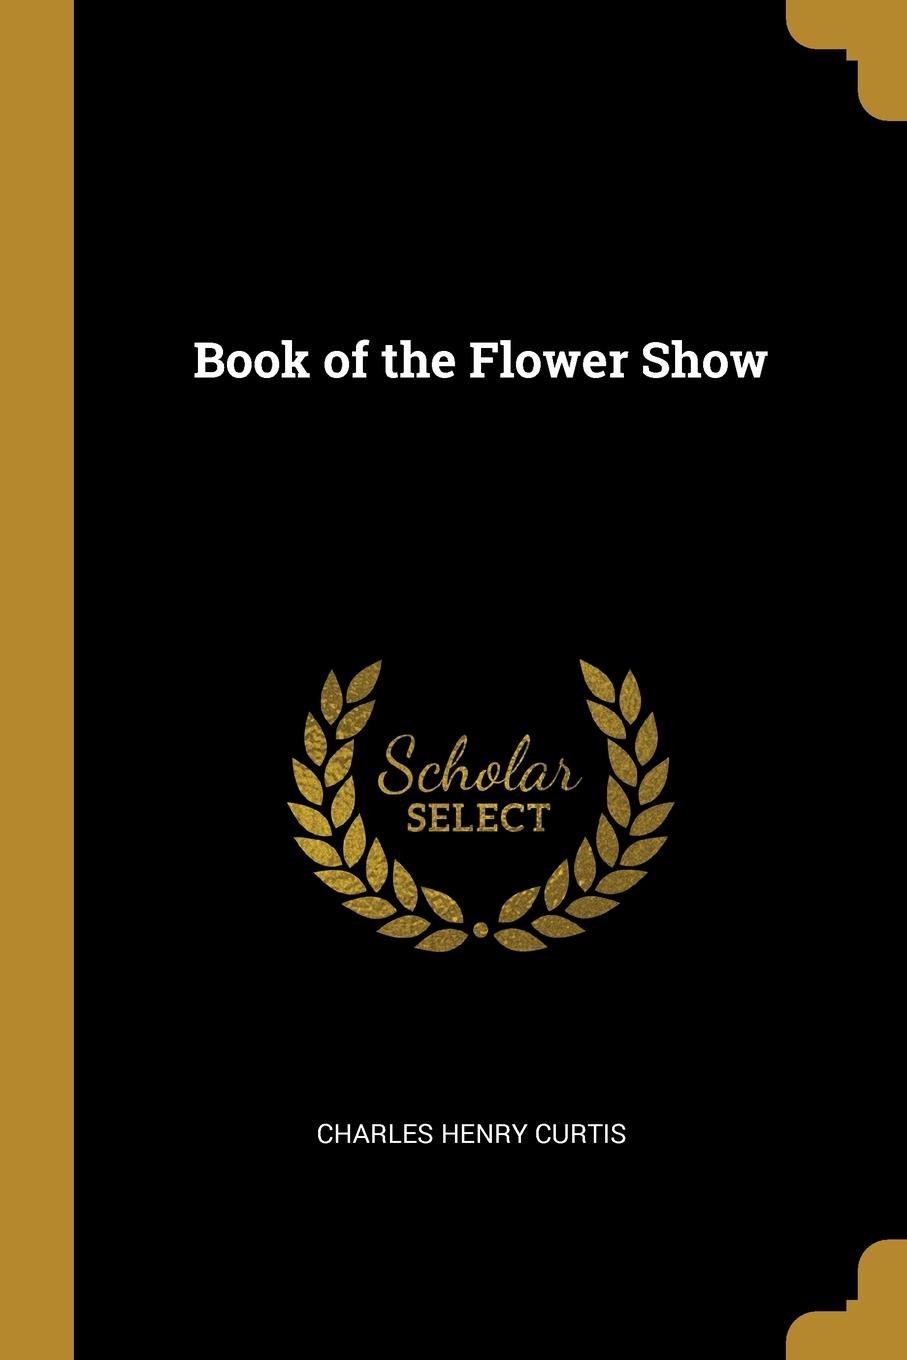 Charles Henry Curtis. Book of the Flower Show